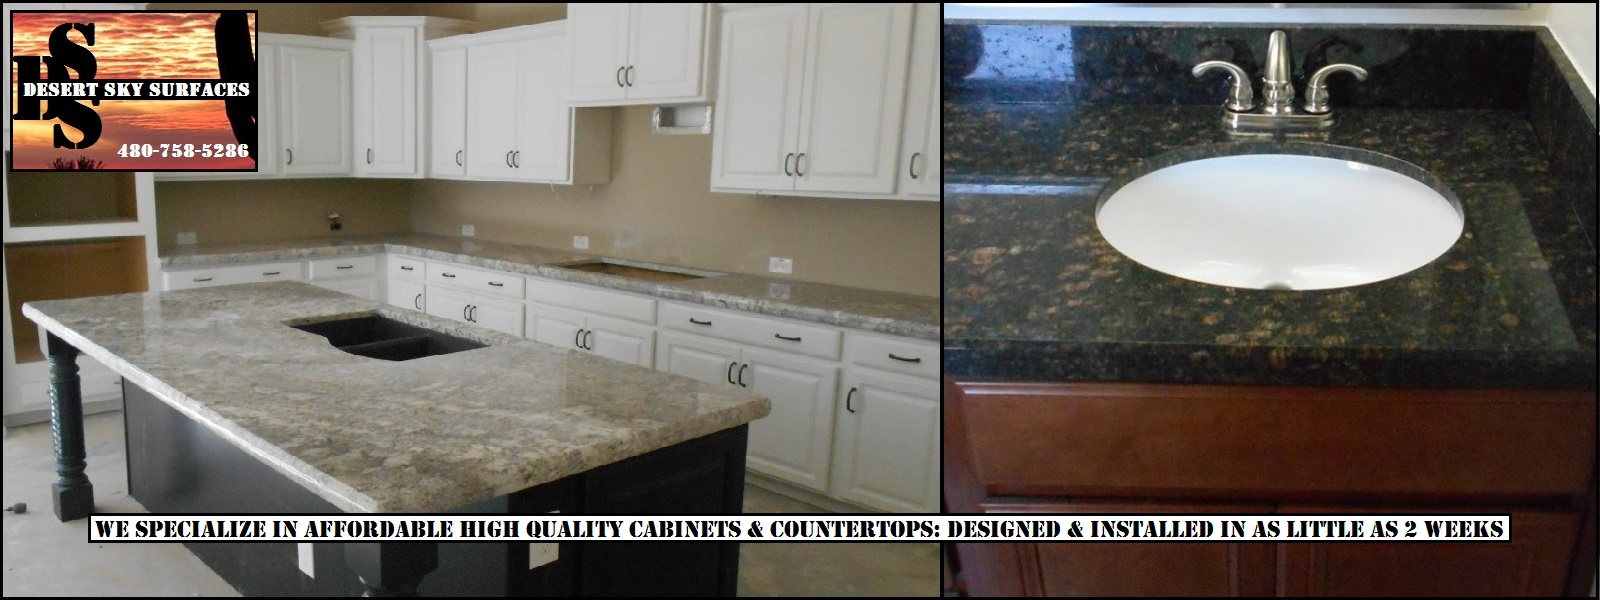 Kitchen U0026 Bath Countertops Granite, Quartz U0026 More